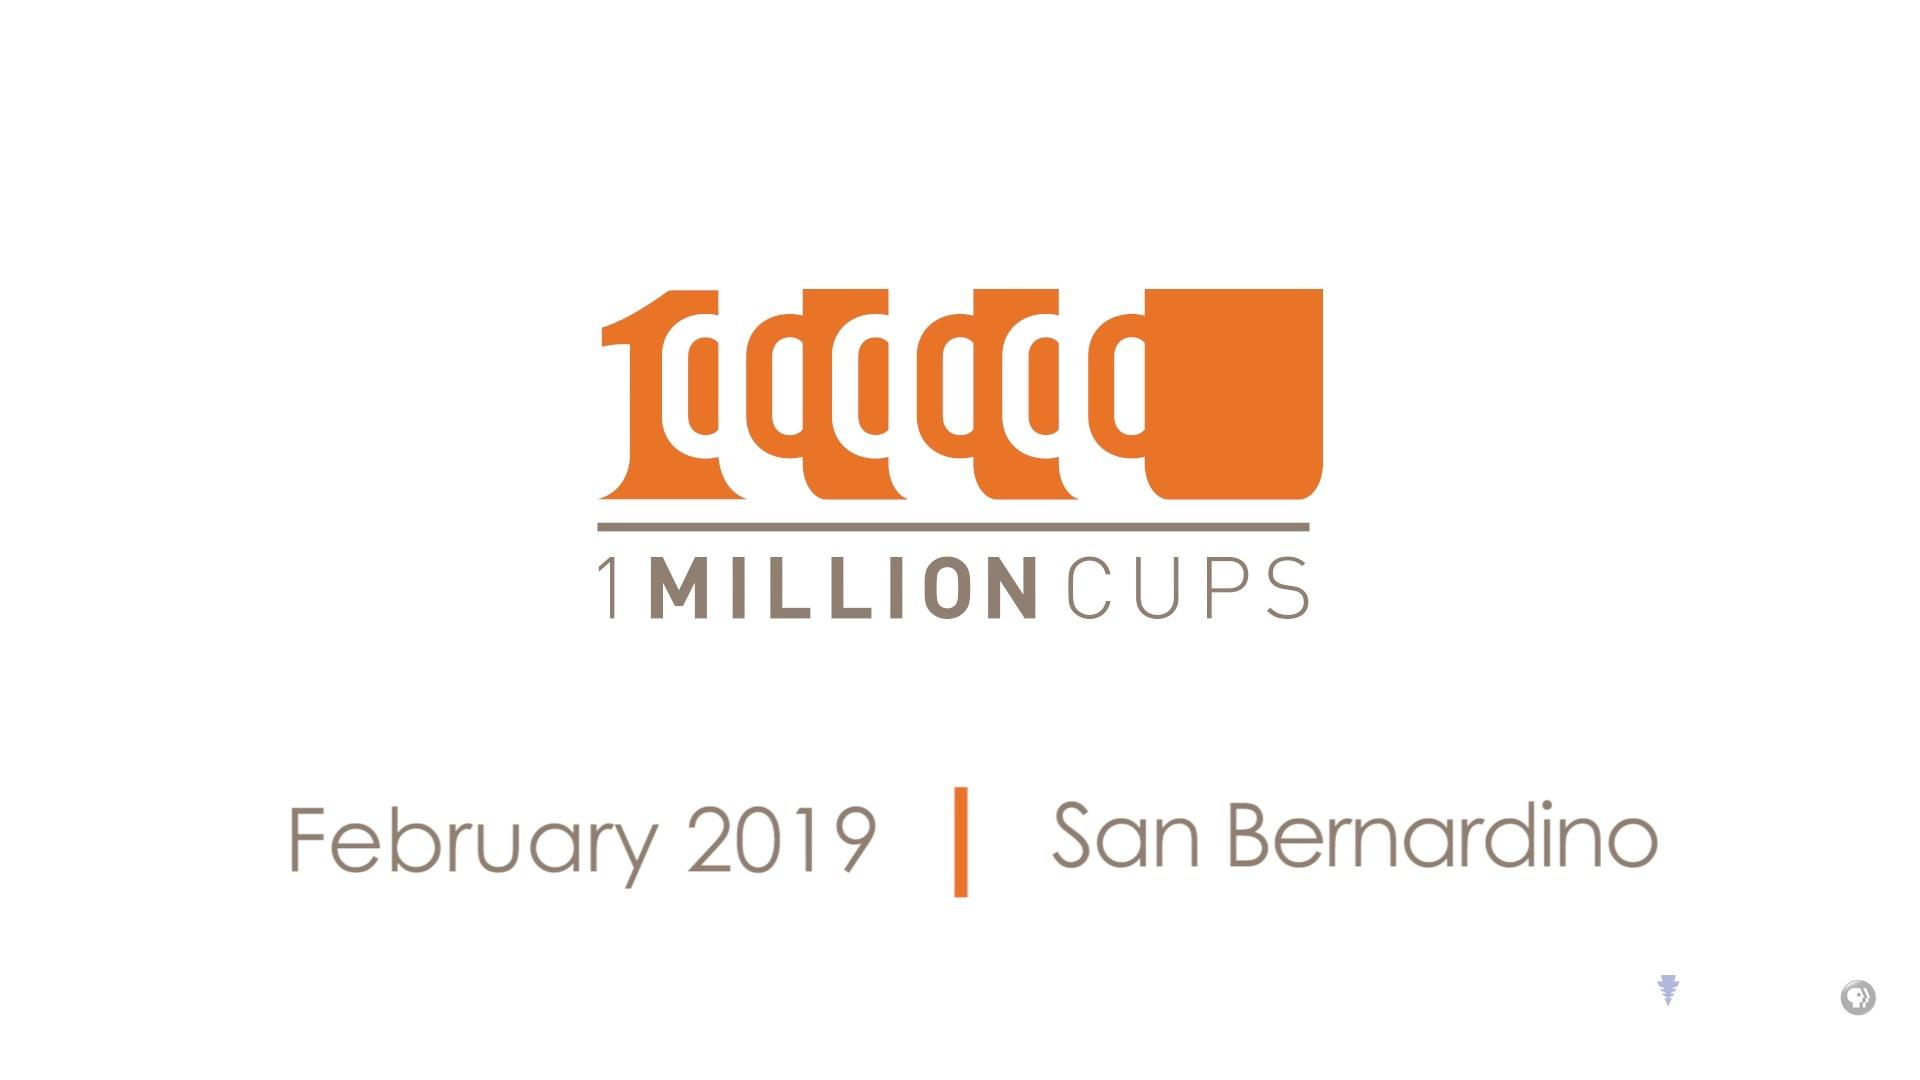 One Million Cups February 2019